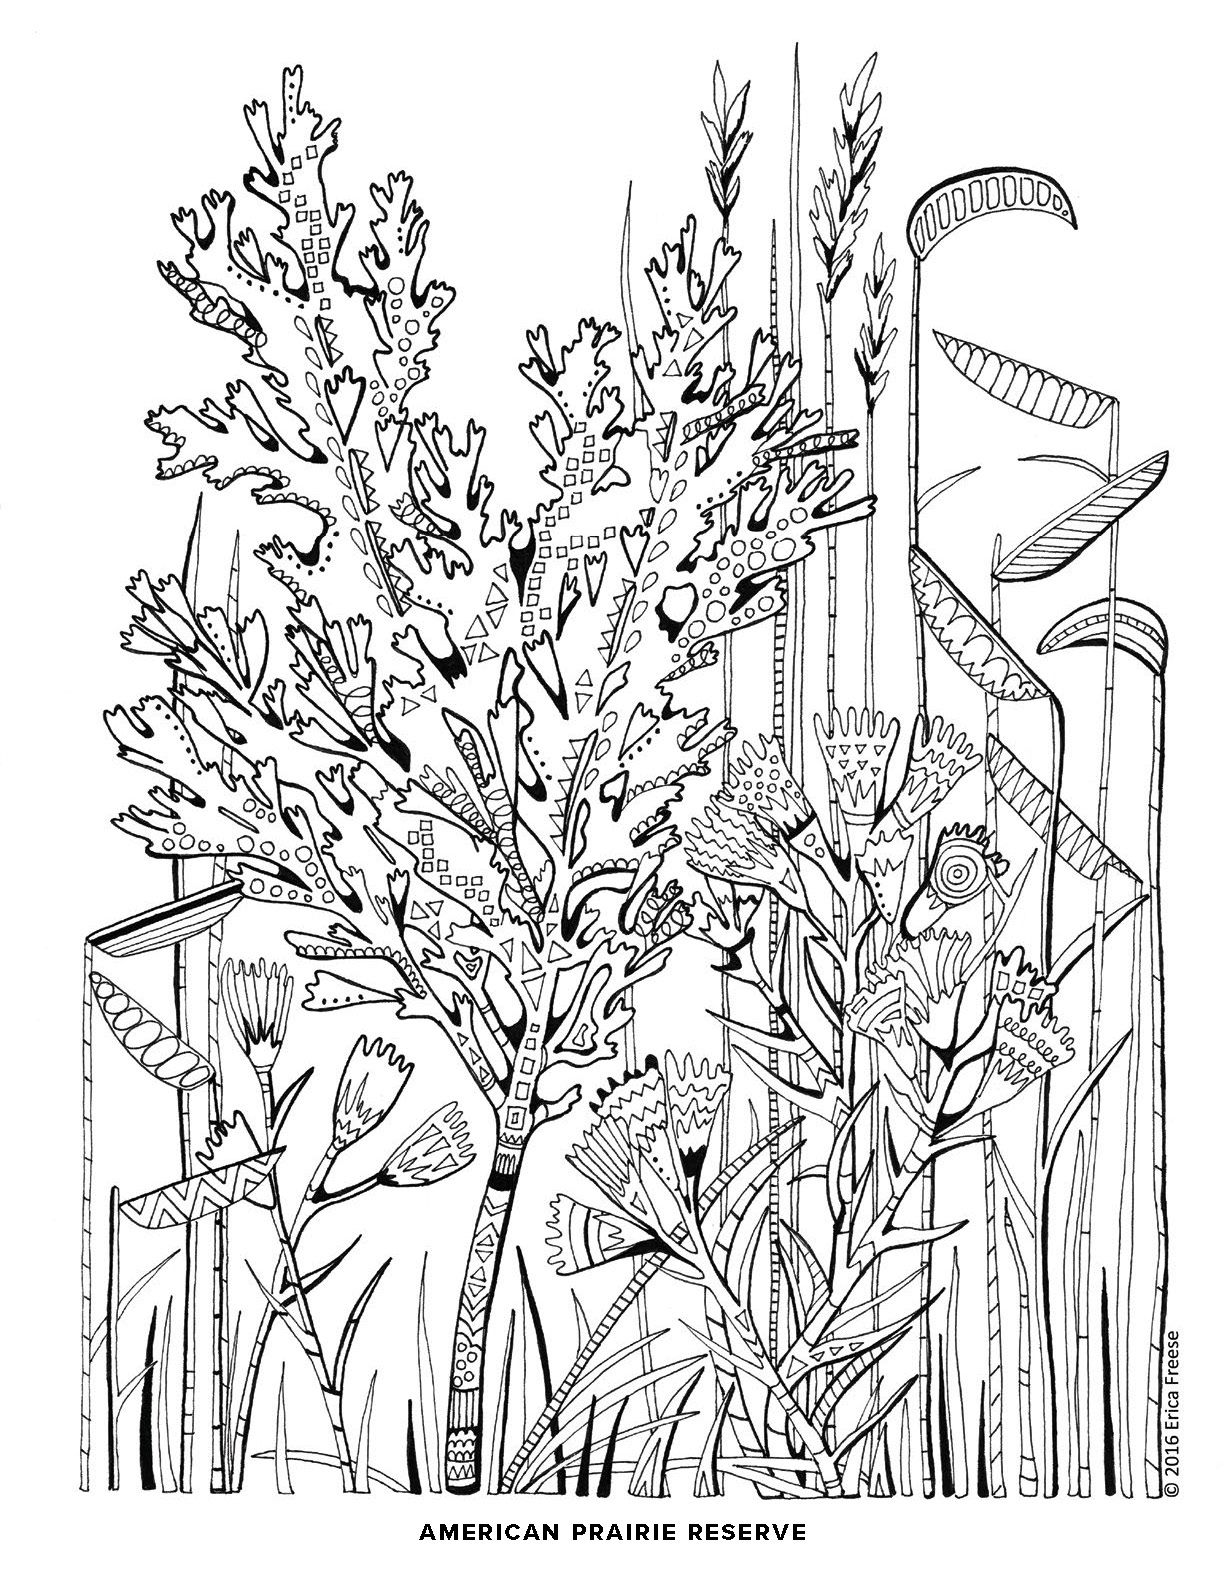 free coloring page from american prairie reserve to download and print at home or school